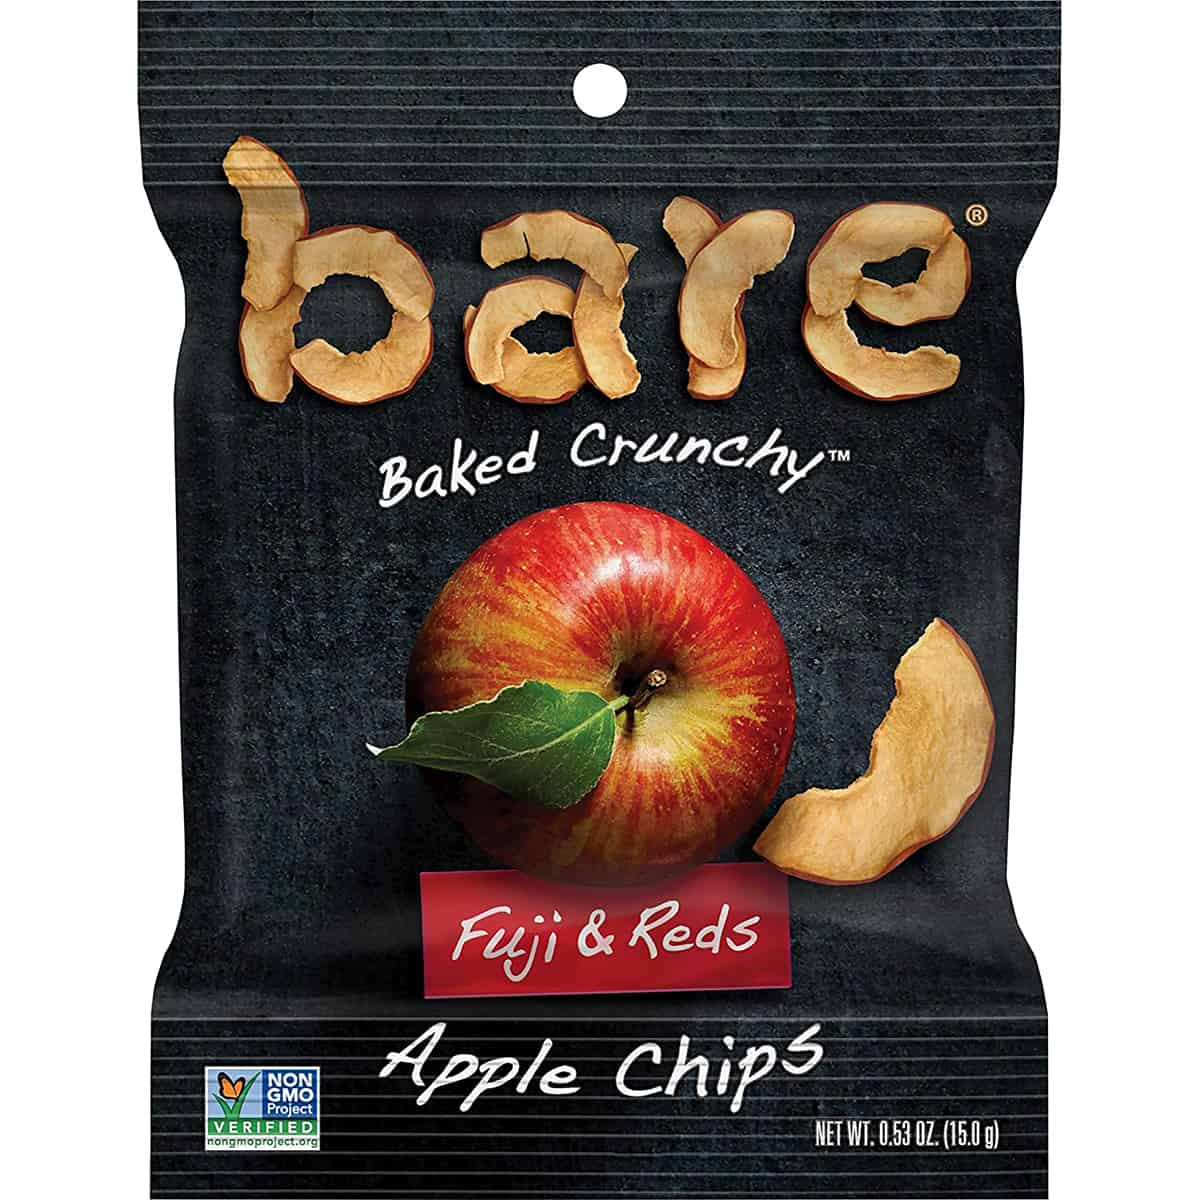 A package of apple chips as an example of a healthy packaged snack.